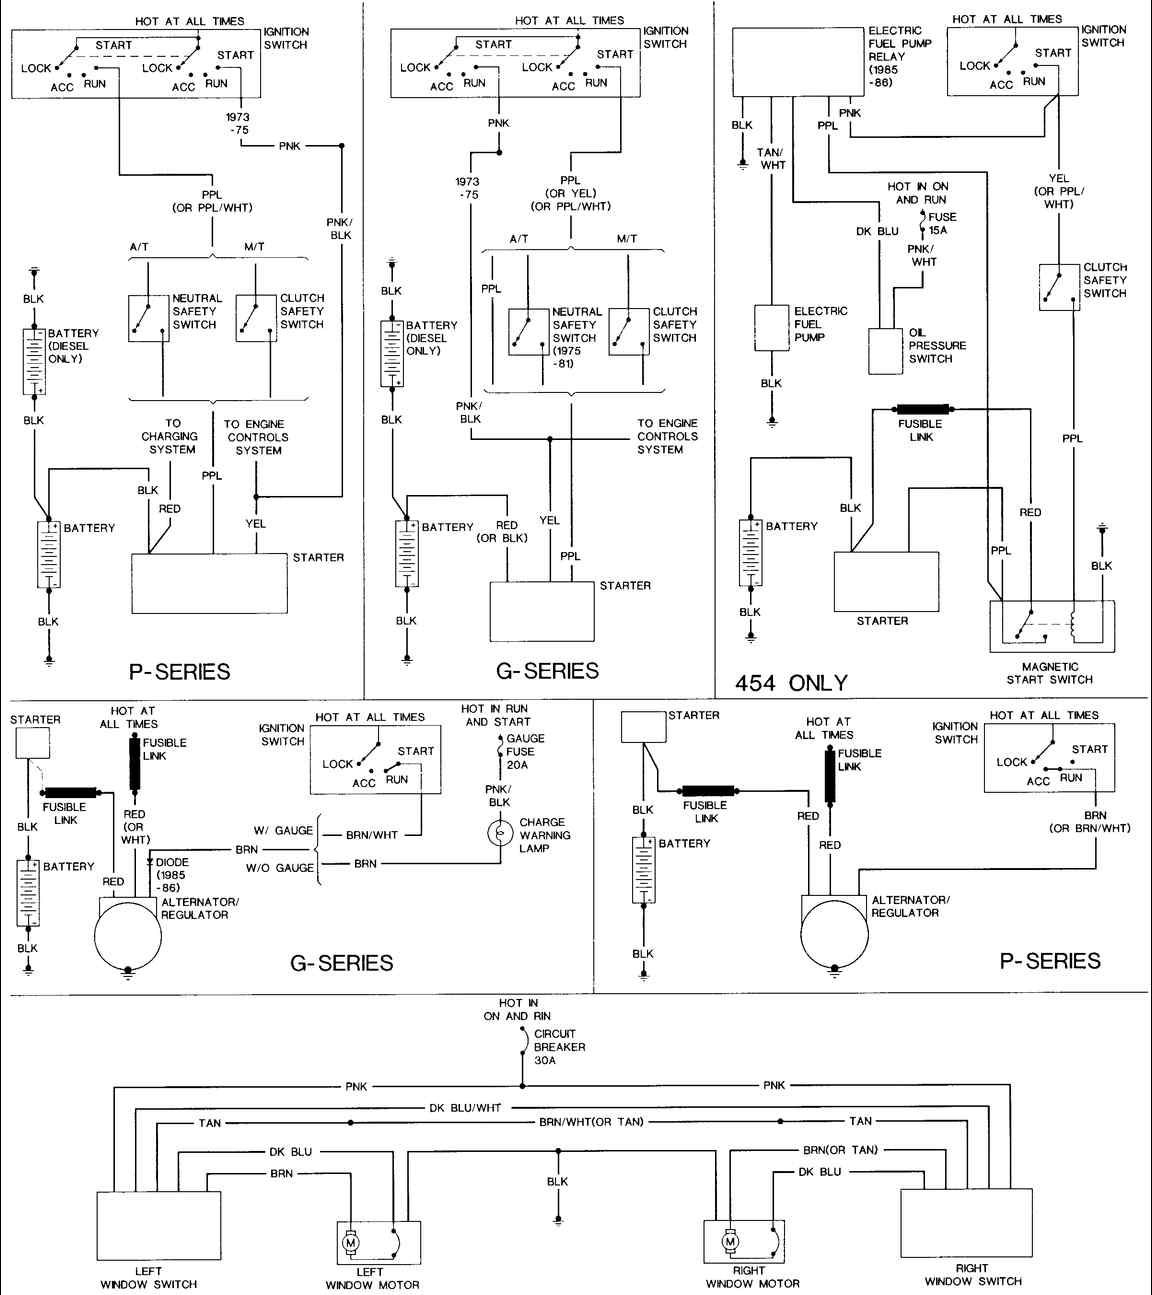 0c73623a181dc376dbb4777e2029d285 85 chevy truck wiring diagram 85 chevy van the steering column Chevy Engine Wiring Harness at mifinder.co